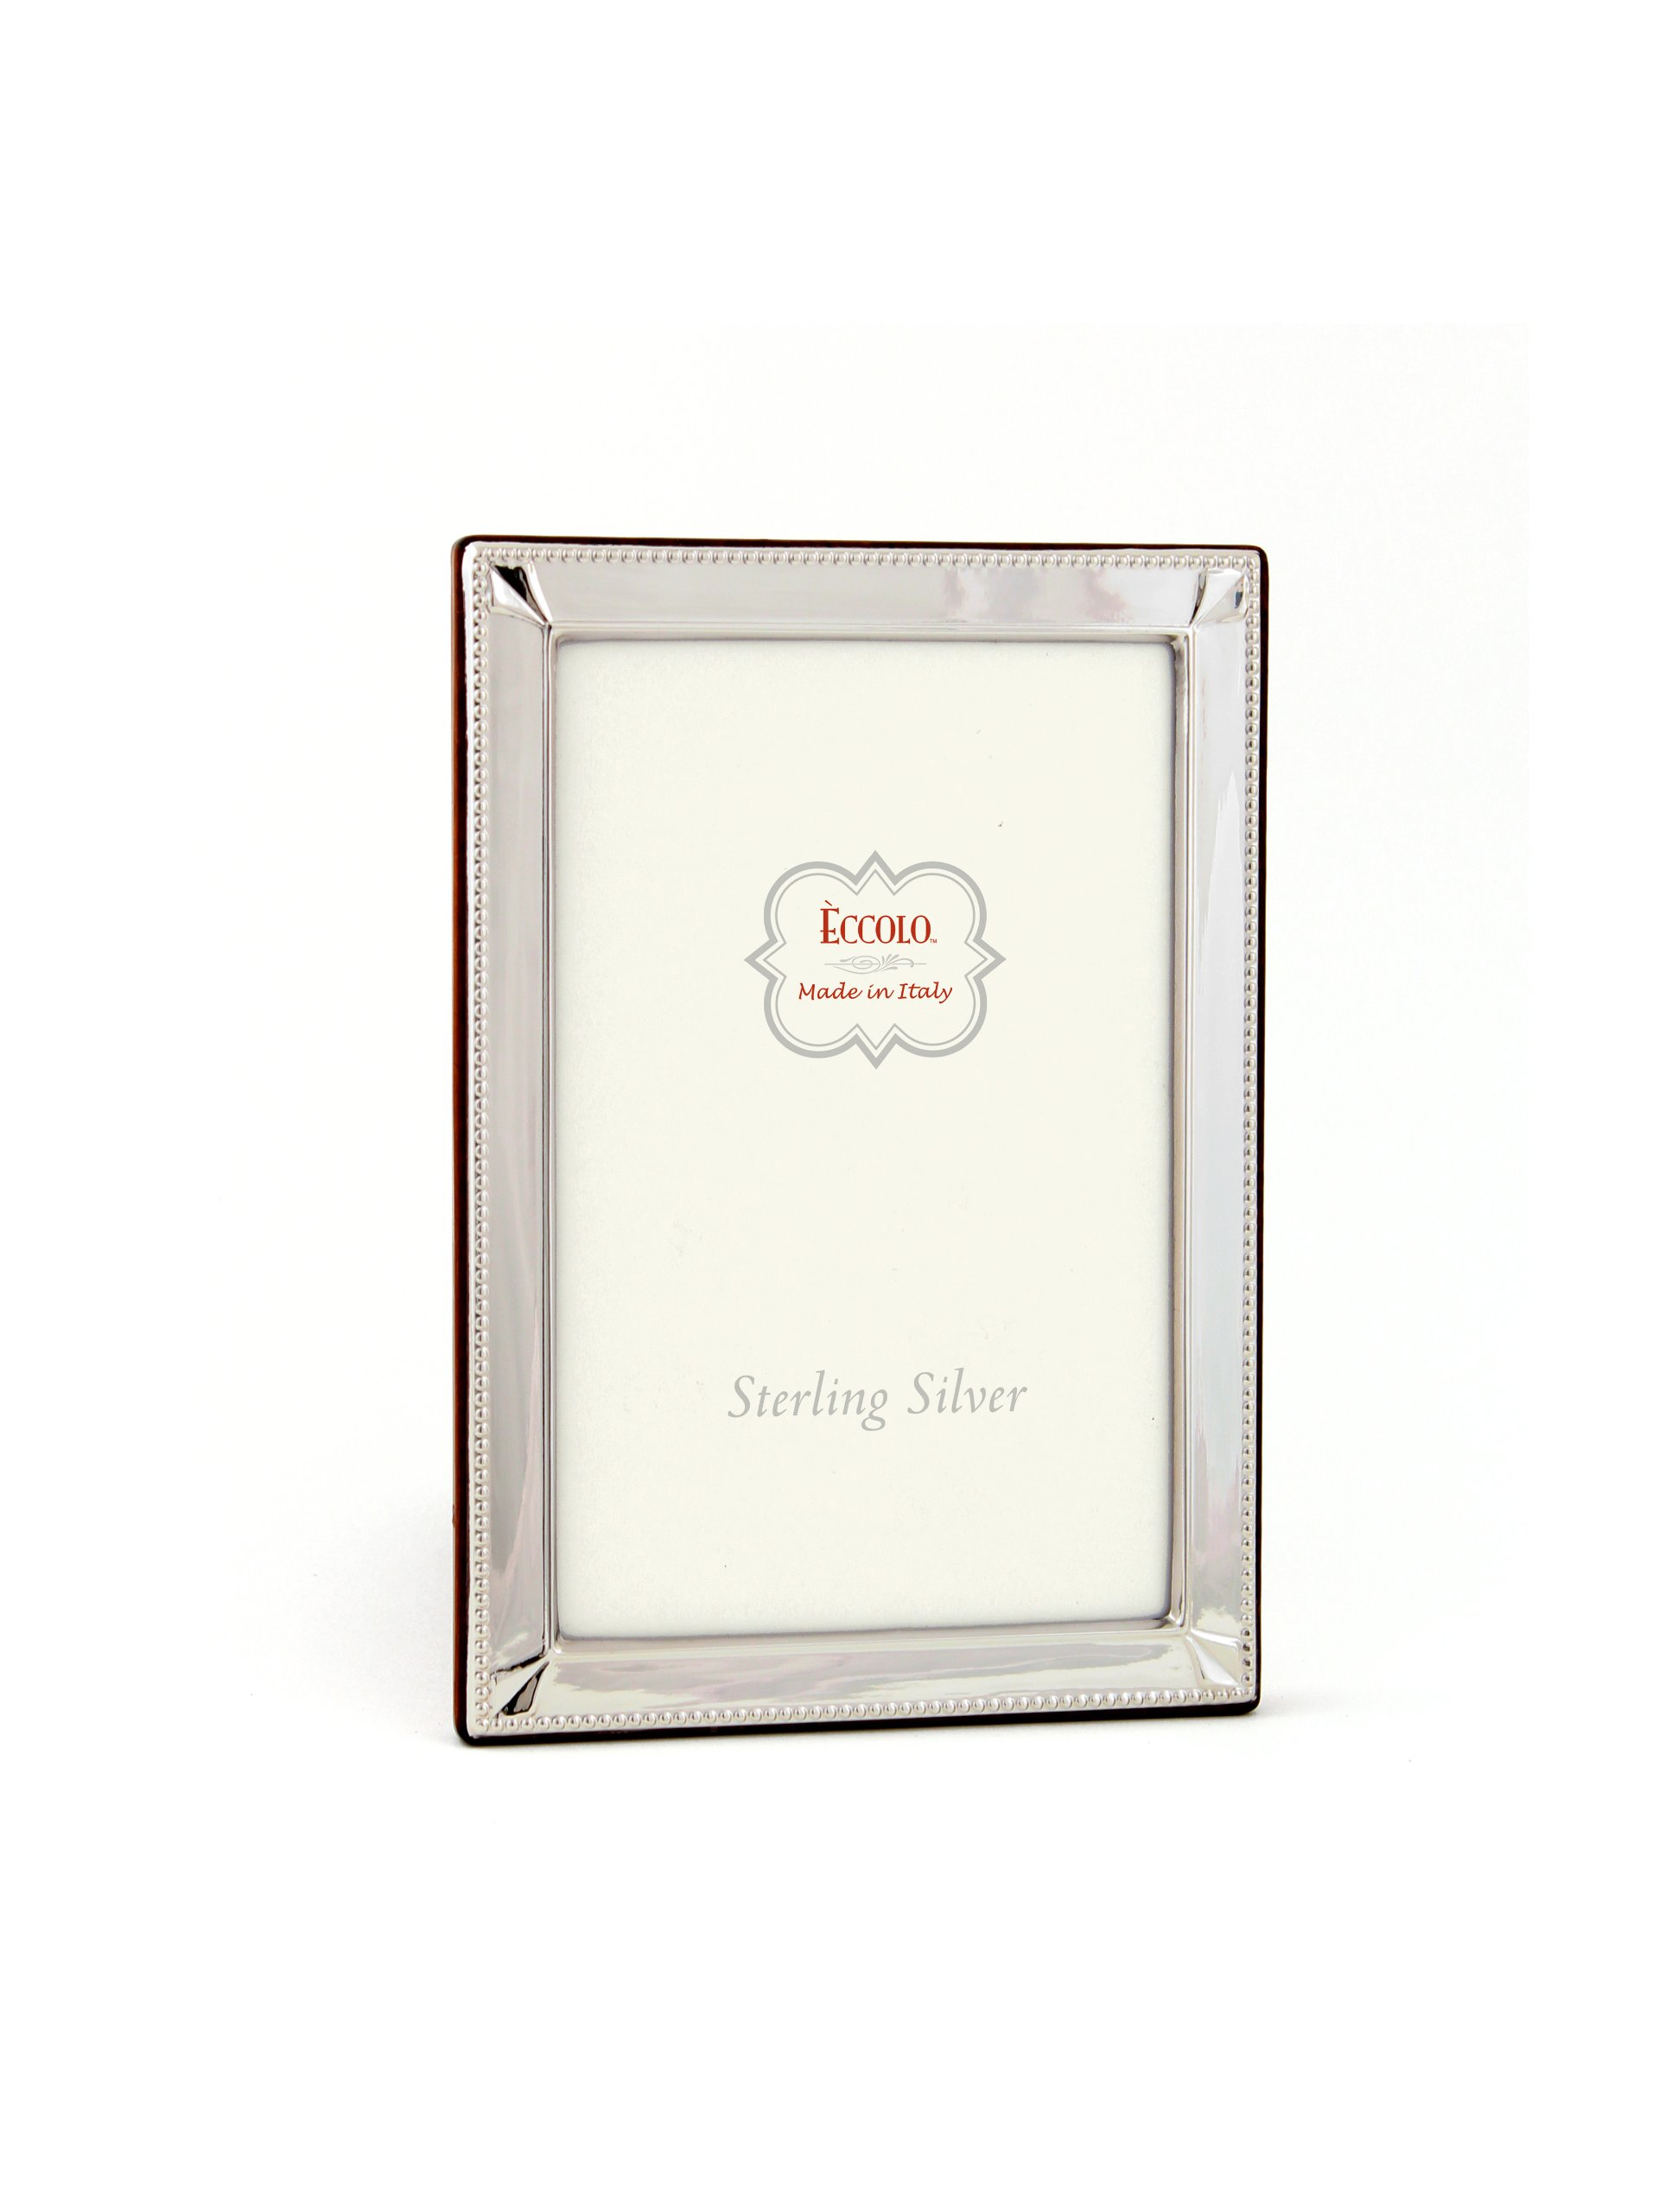 Eccolo Made In Italy Sterling Silver Frame, Diamond Corners, Holds a 4 x 6-Inch Photo